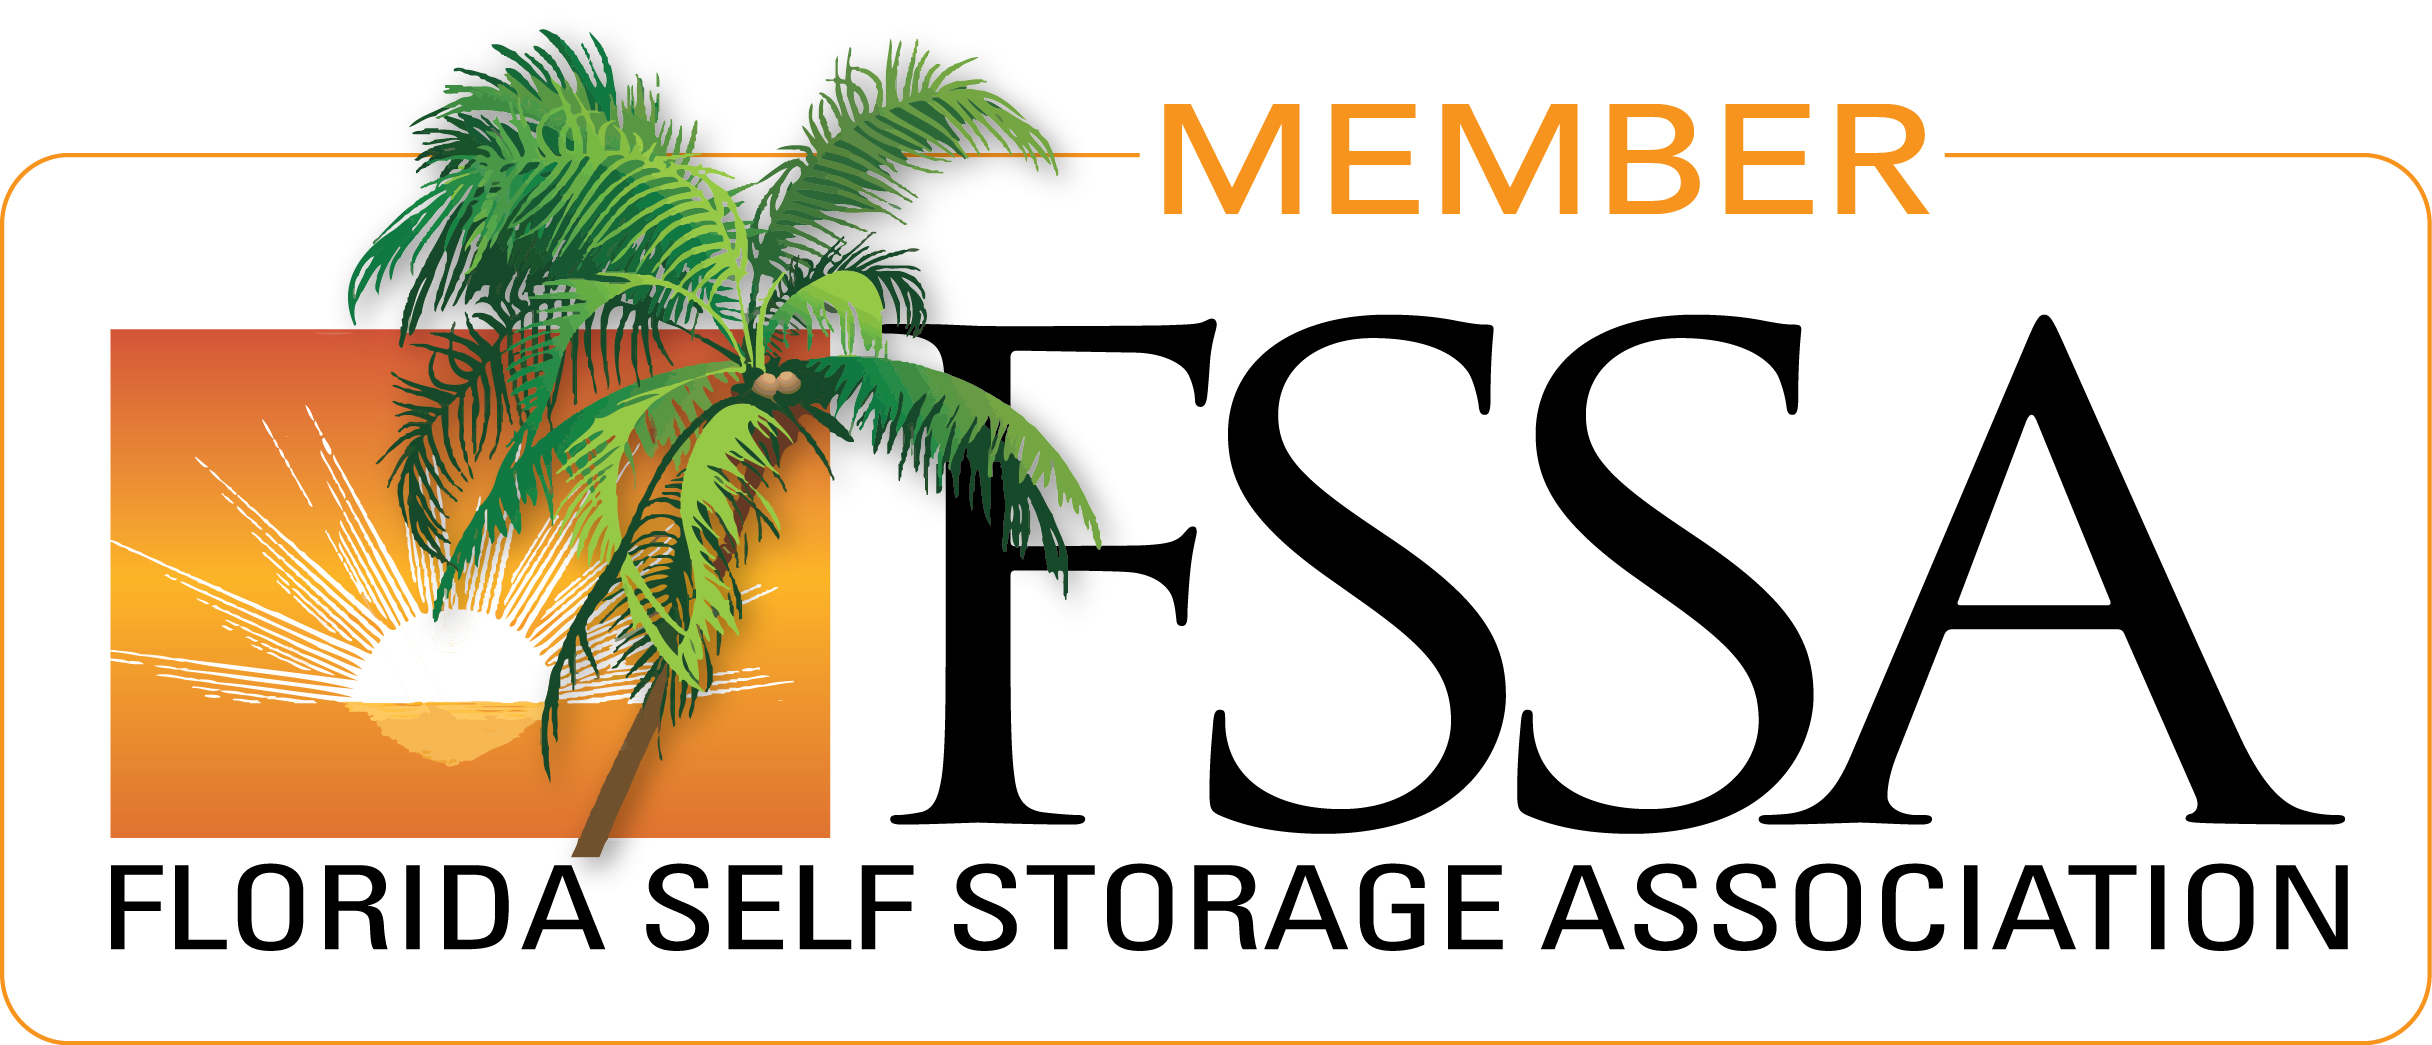 Florida Self Storage Association, FSSA, self storage, real estate, capital, development, financial services, investment, REIT, NYSE